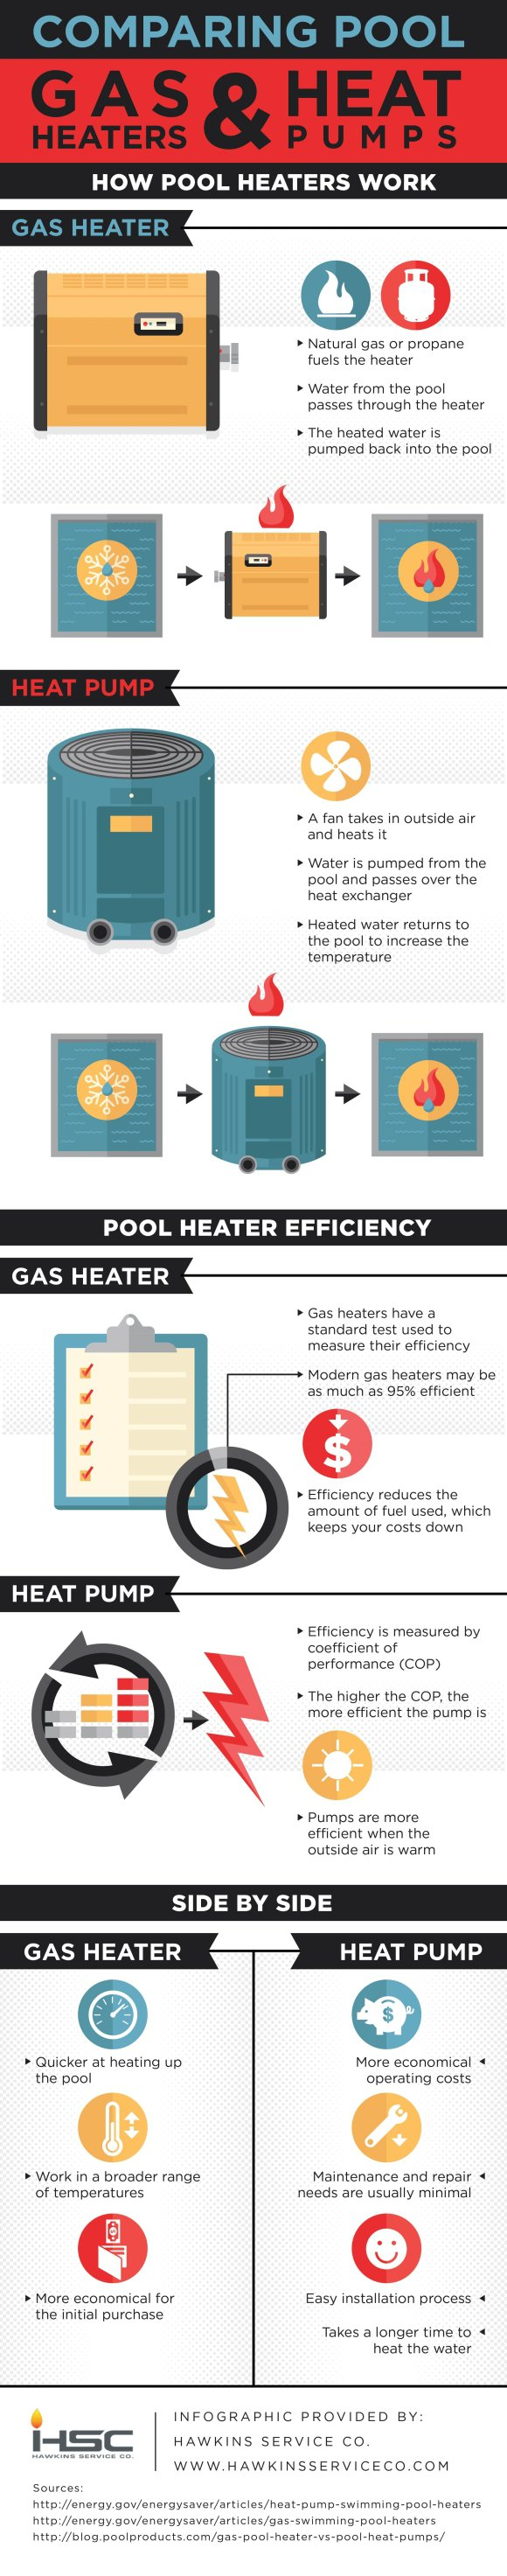 Gas Heaters and Heat Pumps Infographic